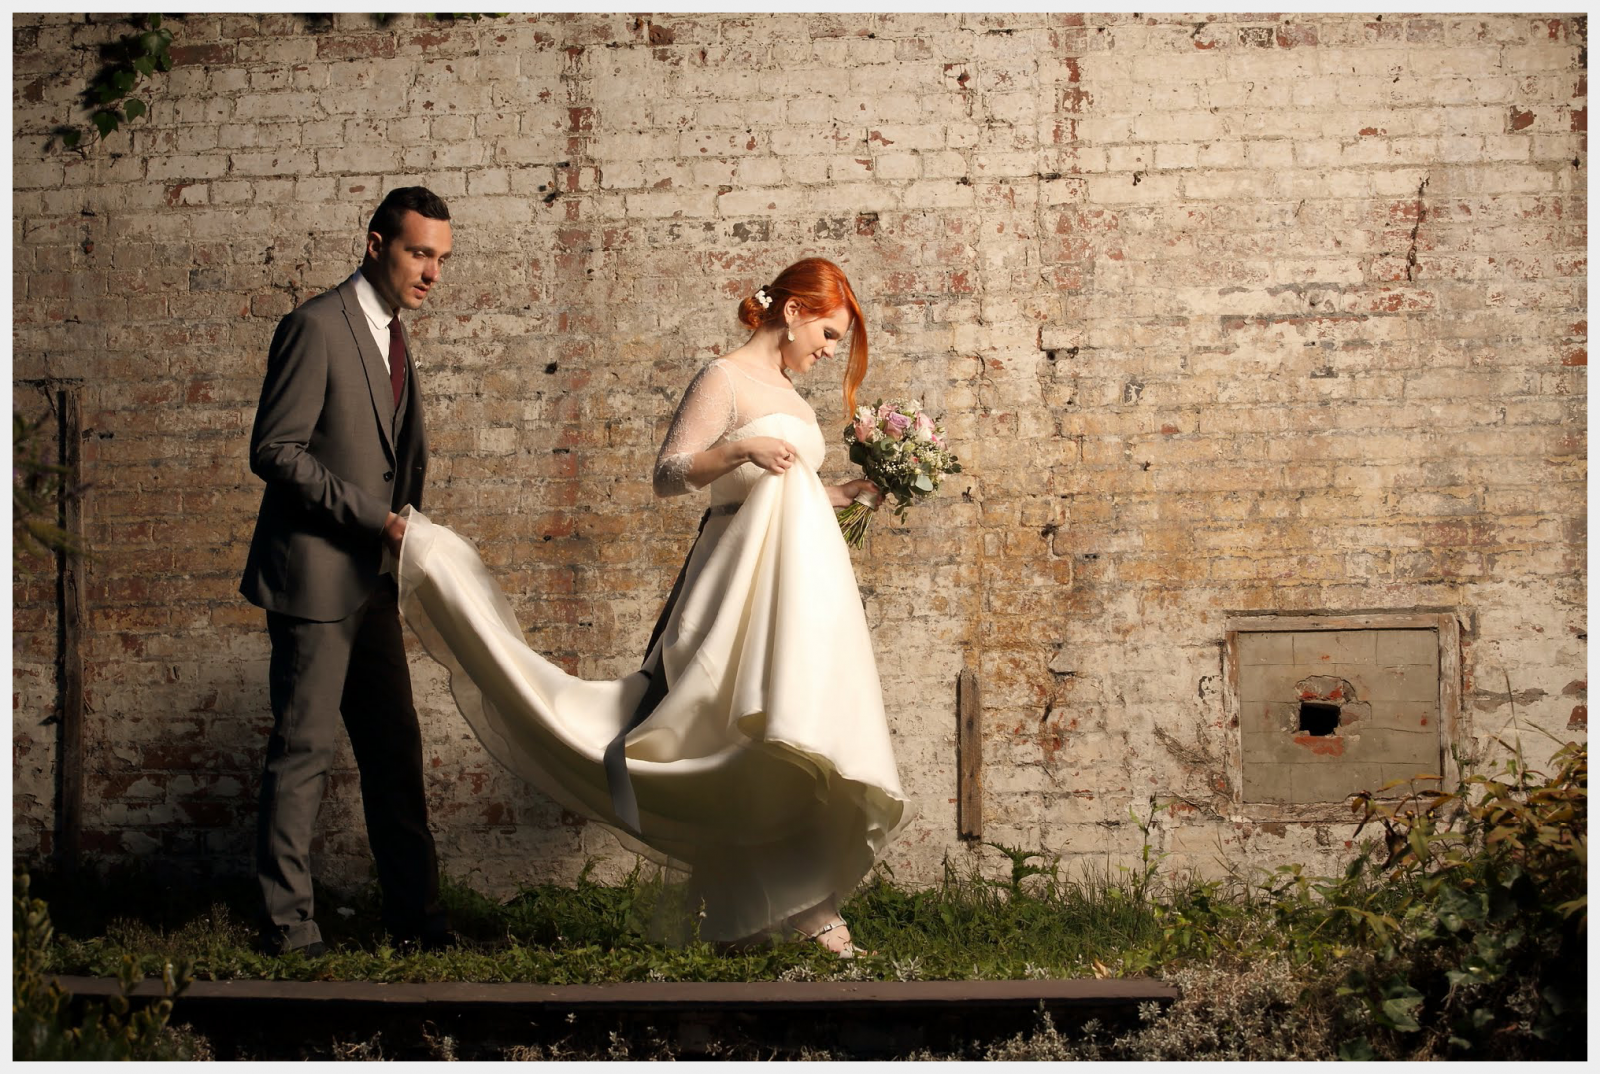 Wedding Dress by Felicity Westmacott: French lace and silk organza with ribbon sash